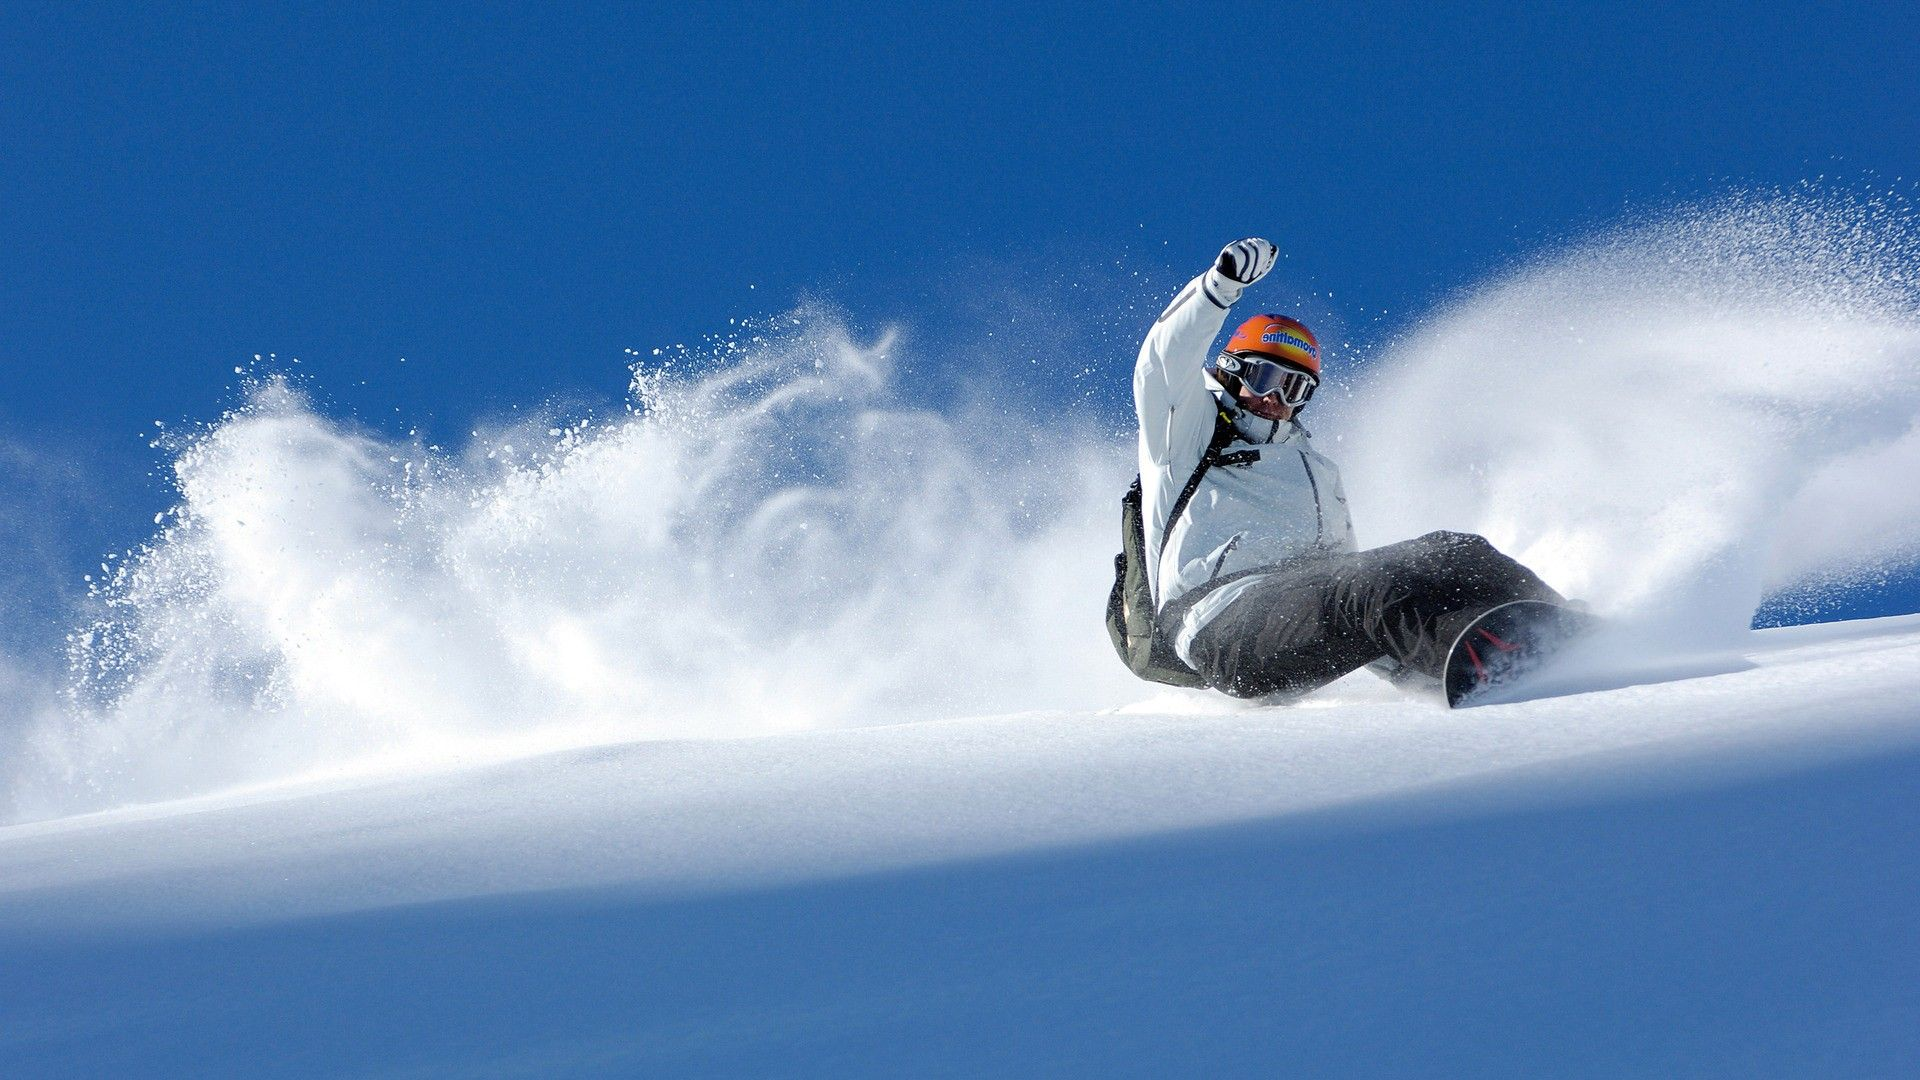 snowboarding desktop wallpaper 61341